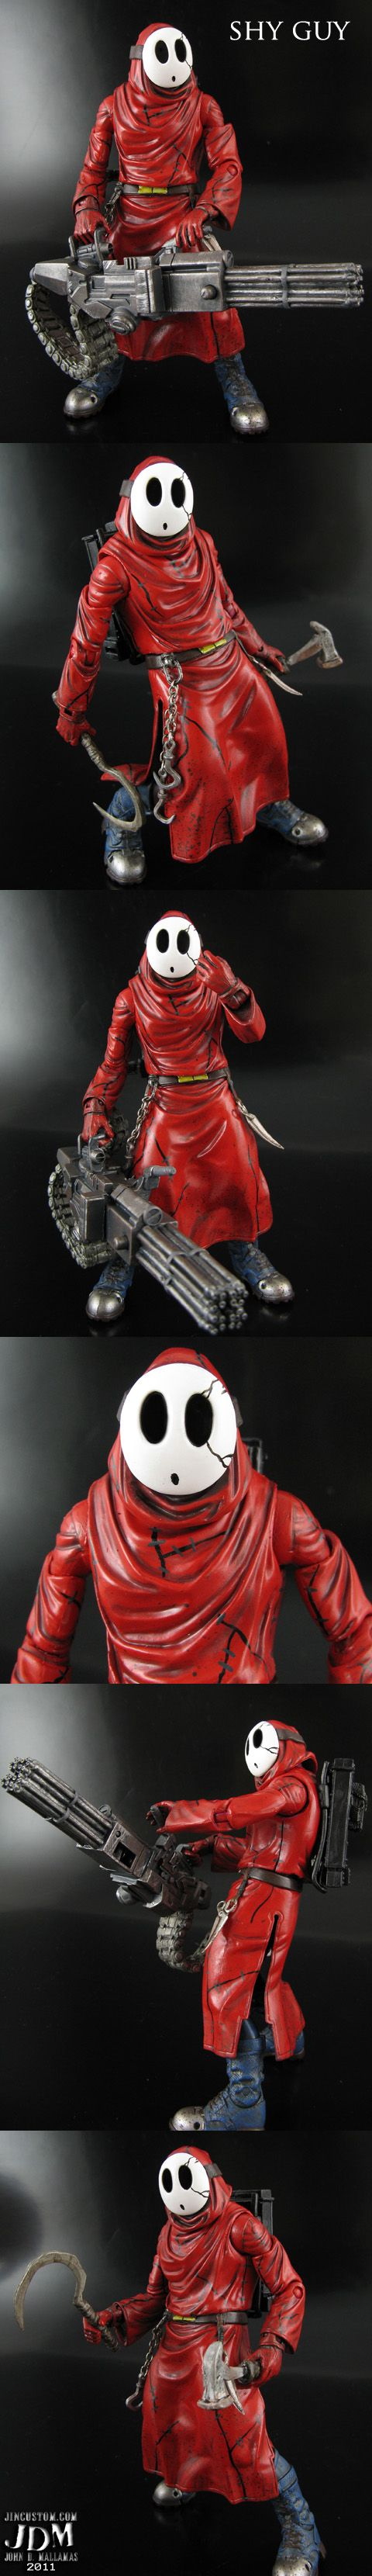 Shy Guy by Jin-Saotome on deviantART